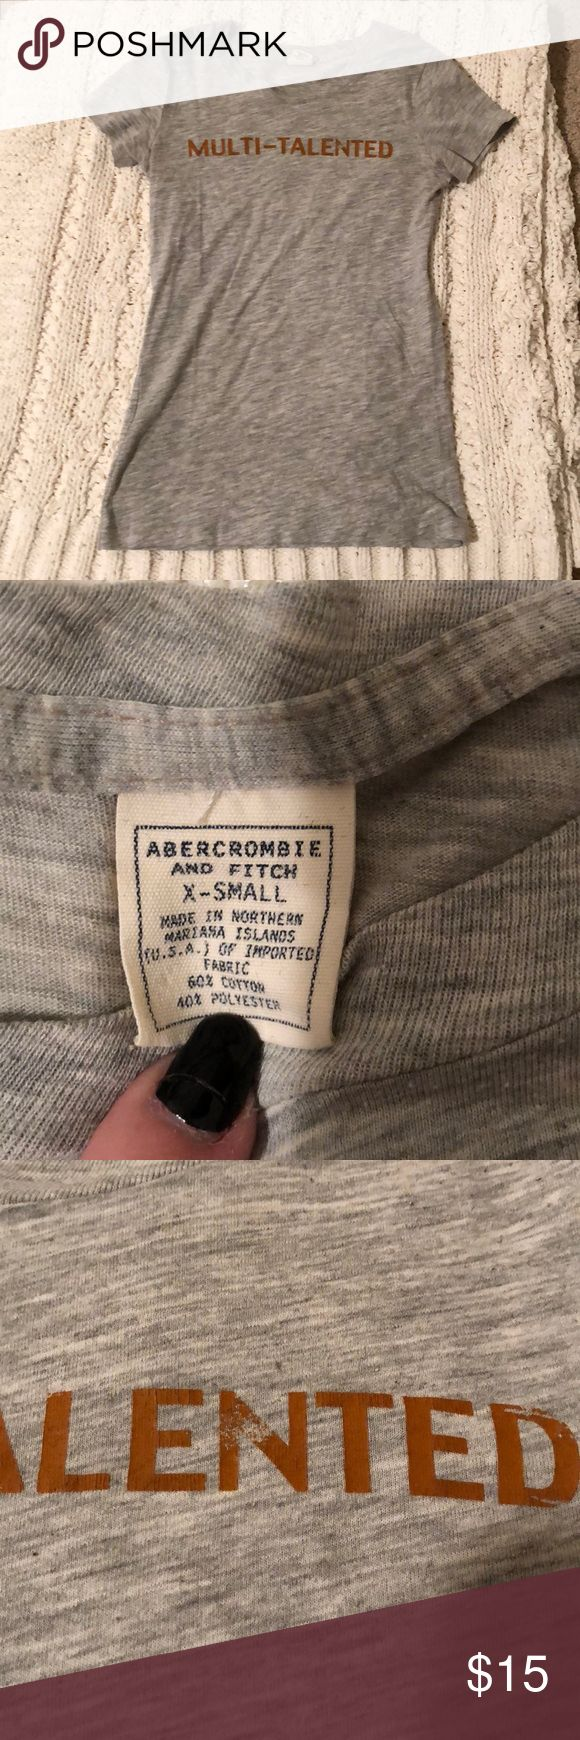 """Abercrombie and Fitch Short sleeve T-shirt Light gray Abercrombie and Fitch T-shirt. Says """"multi-talented"""" on the front in brown letters. Some of the letters are a bit faded but the shirt is in great condition. Worn plenty of times but still like new. Abercrombie & Fitch Tops Tees - Short Sleeve"""